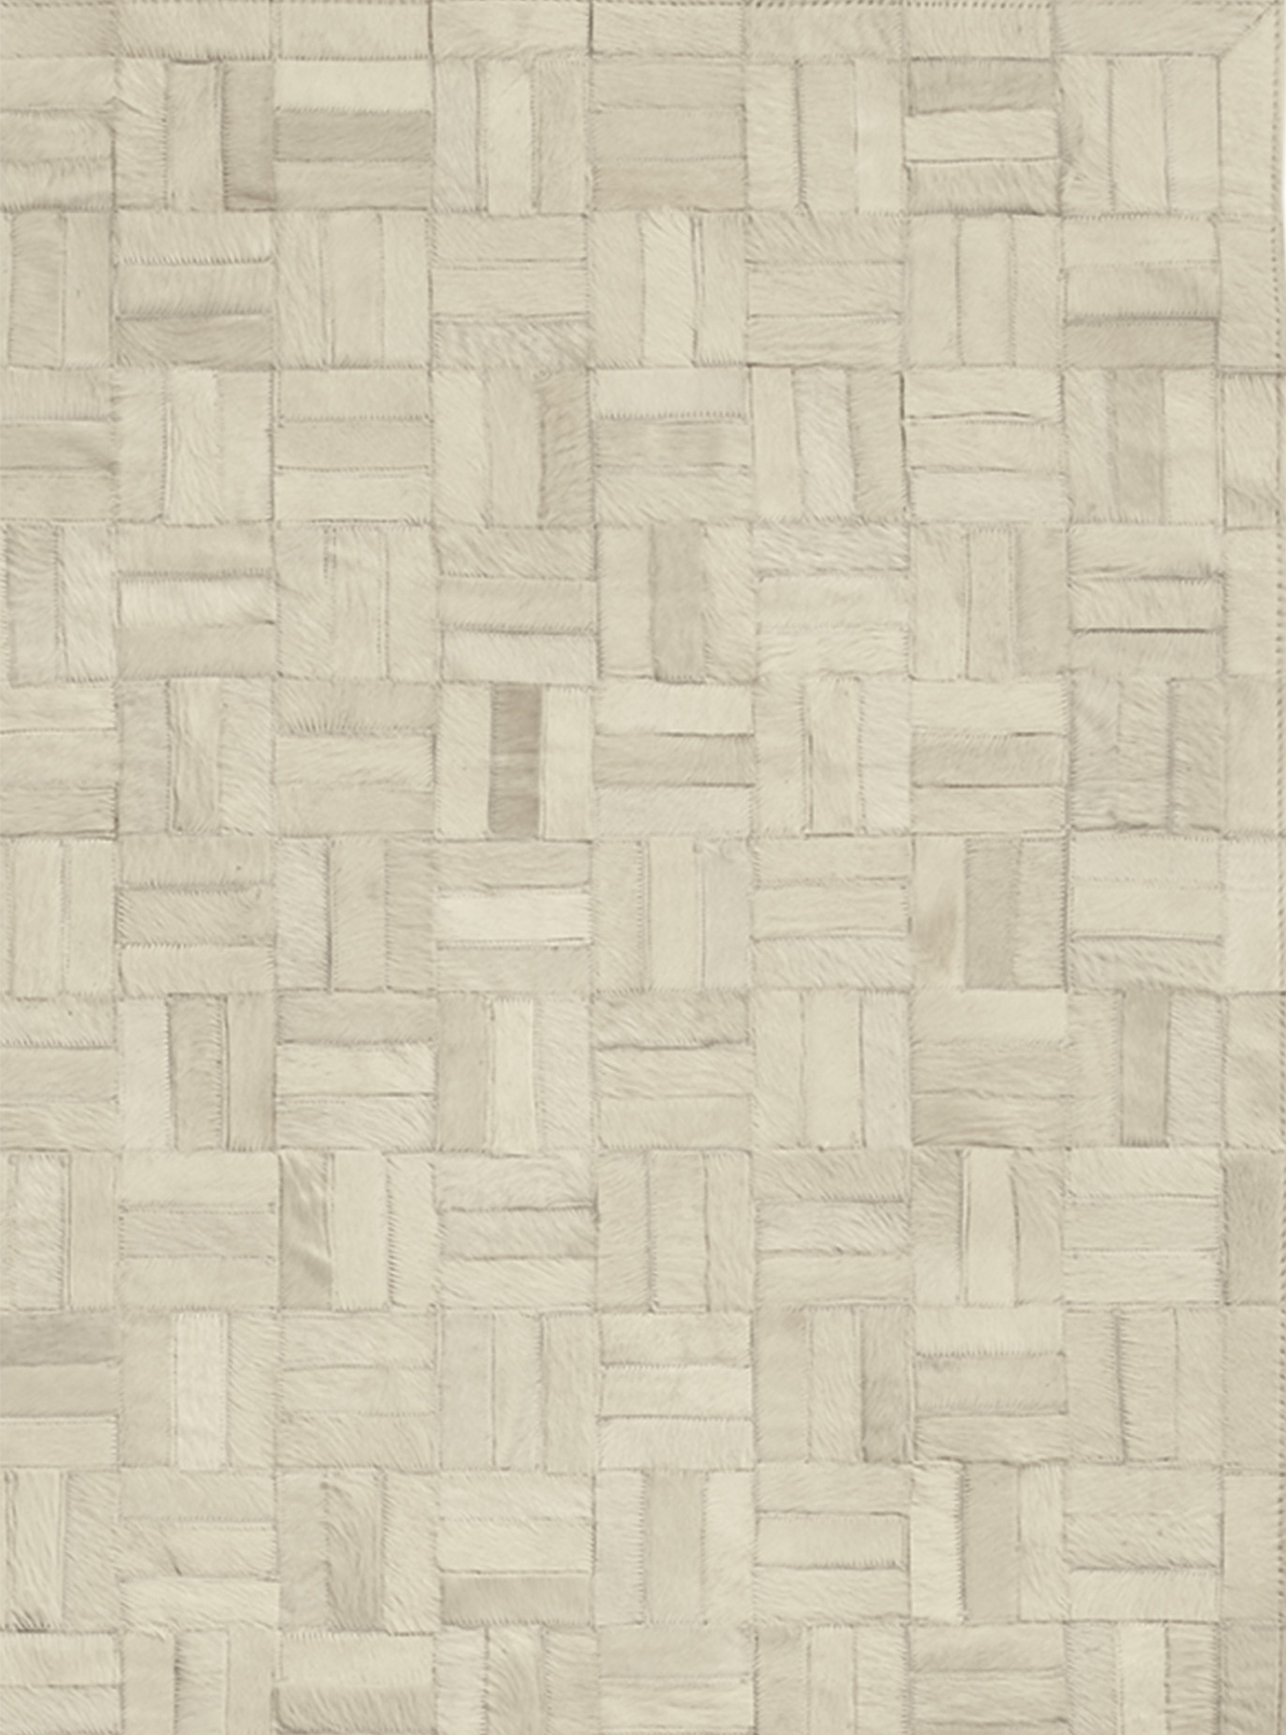 Natural cowhide arranged in a graphic basketweave make this an interesting neutral. It's subtle but sculptural, casual yet chic. Stitched by hand, each rug has a fabulous one-of-a-kind look.    SERENA & LILY $695